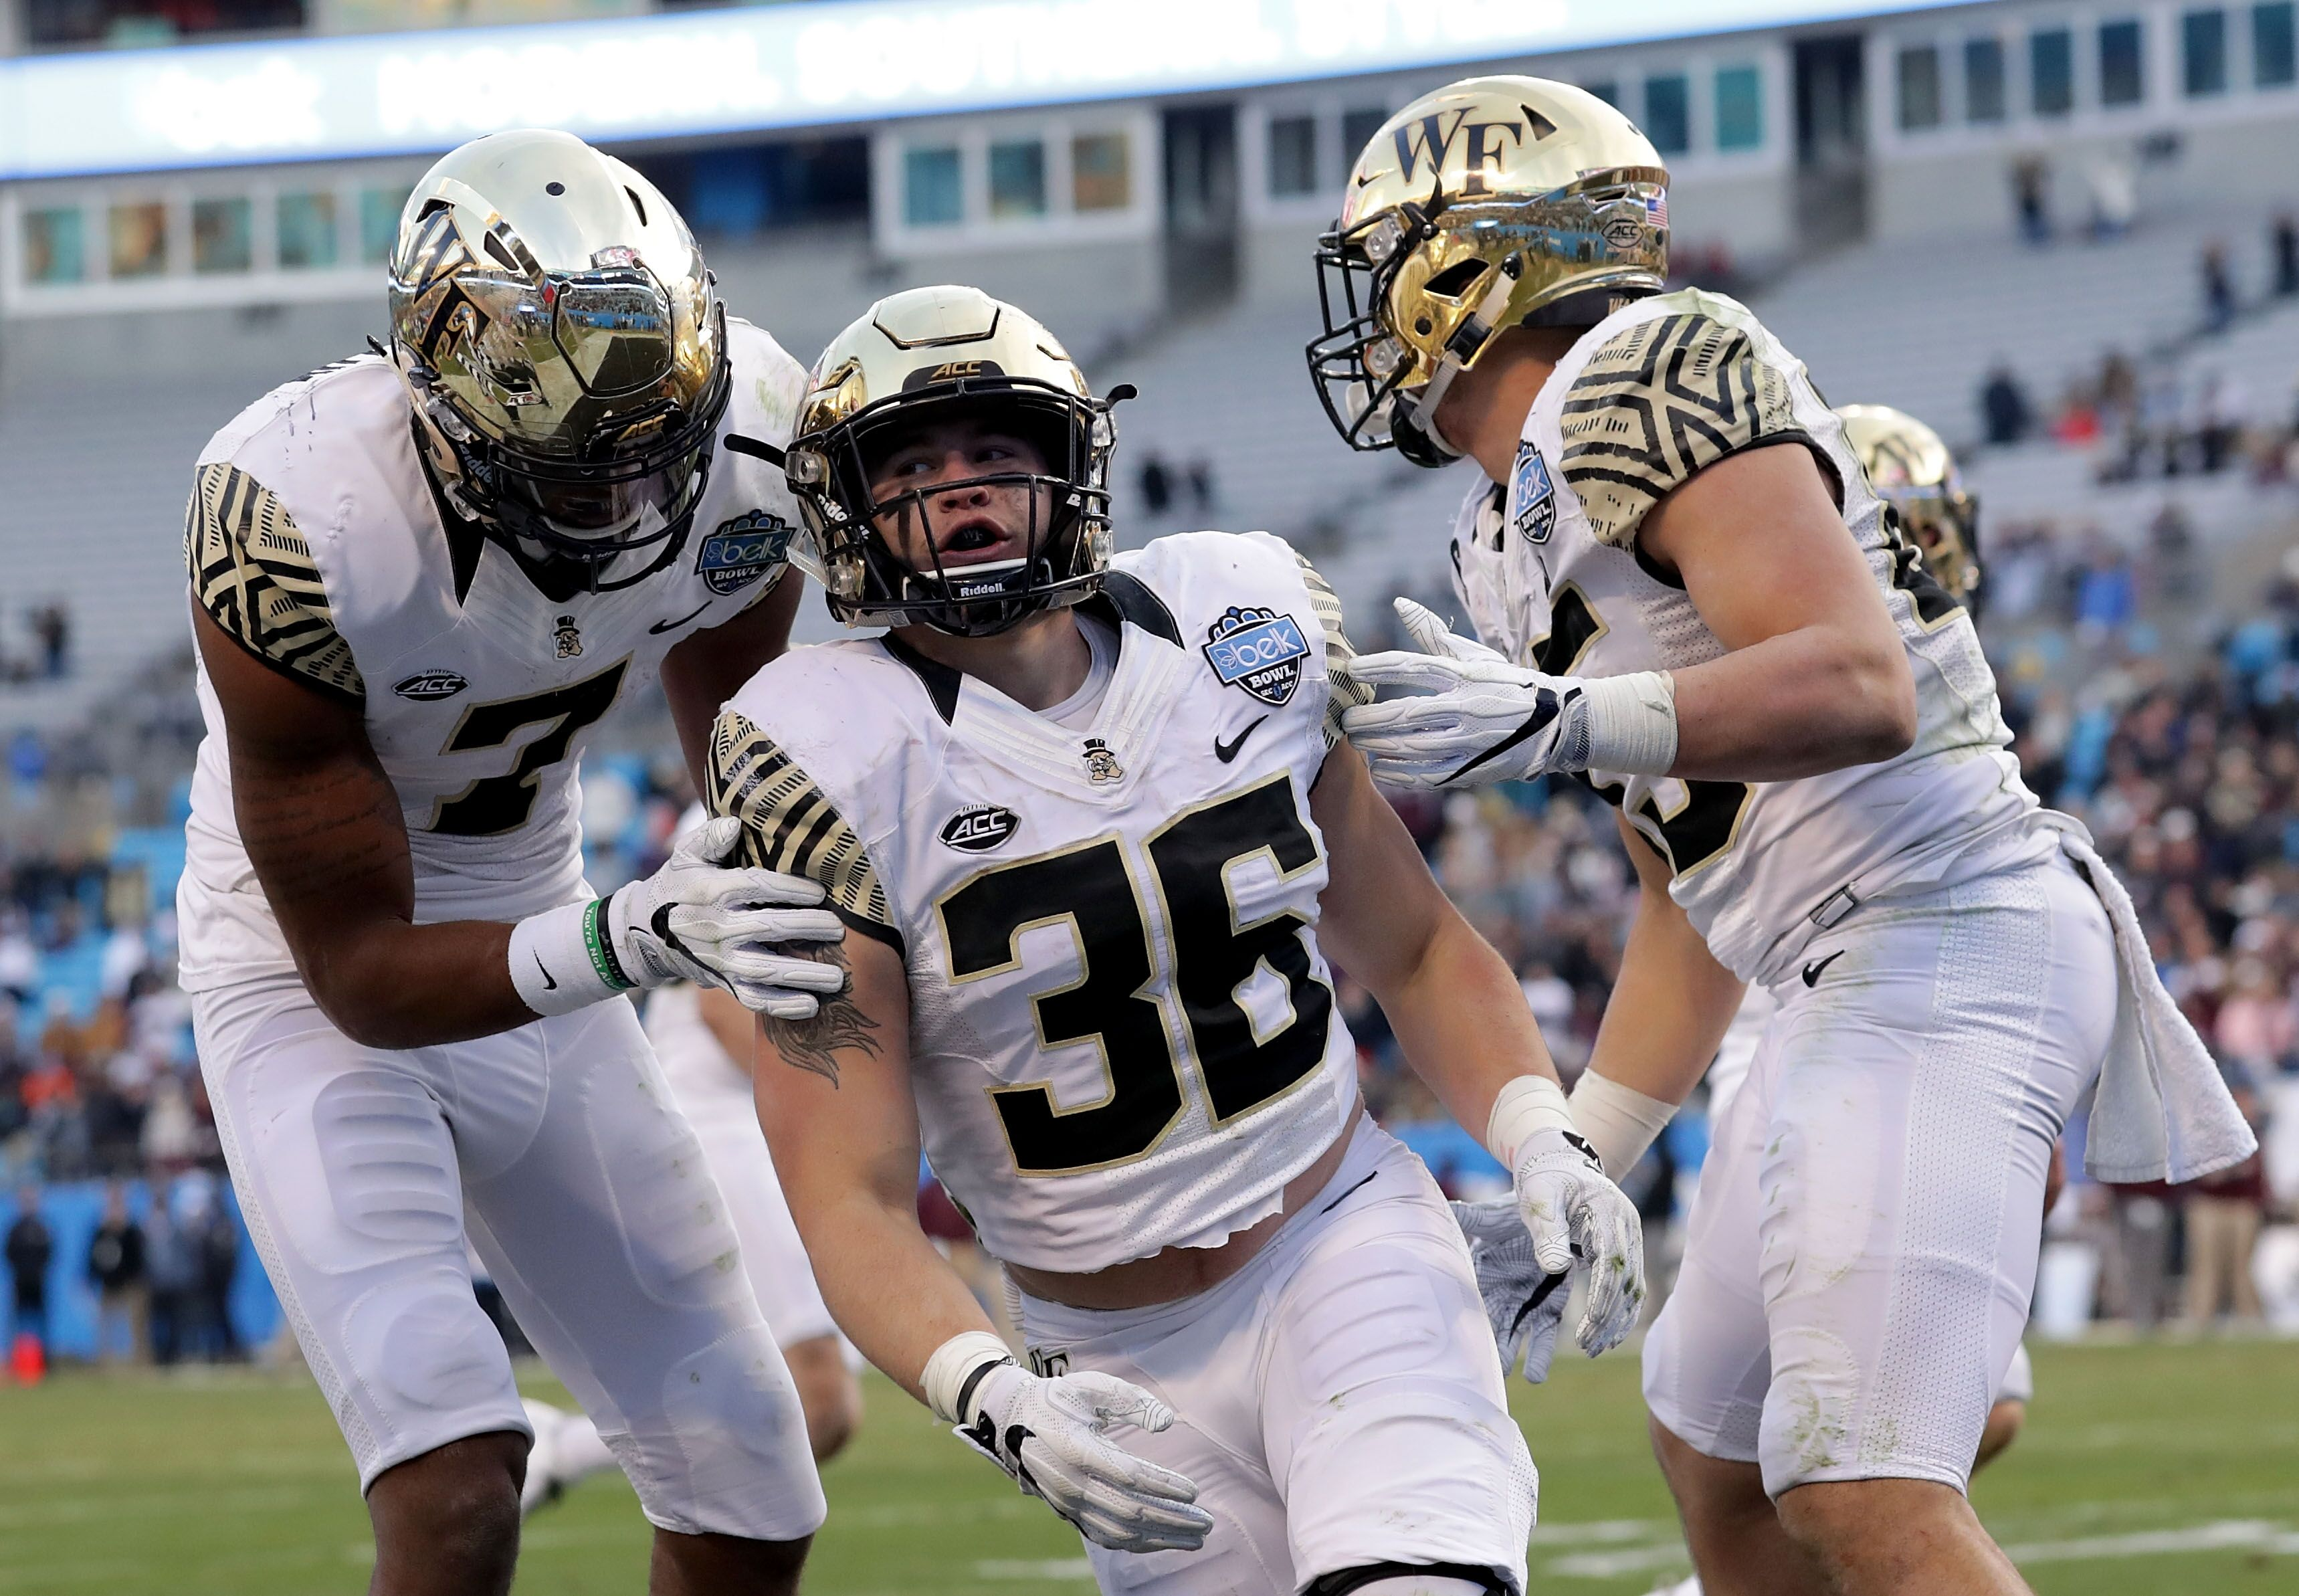 Get the latest Wake Forest Demon Deacons news scores stats standings rumors and more from ESPN